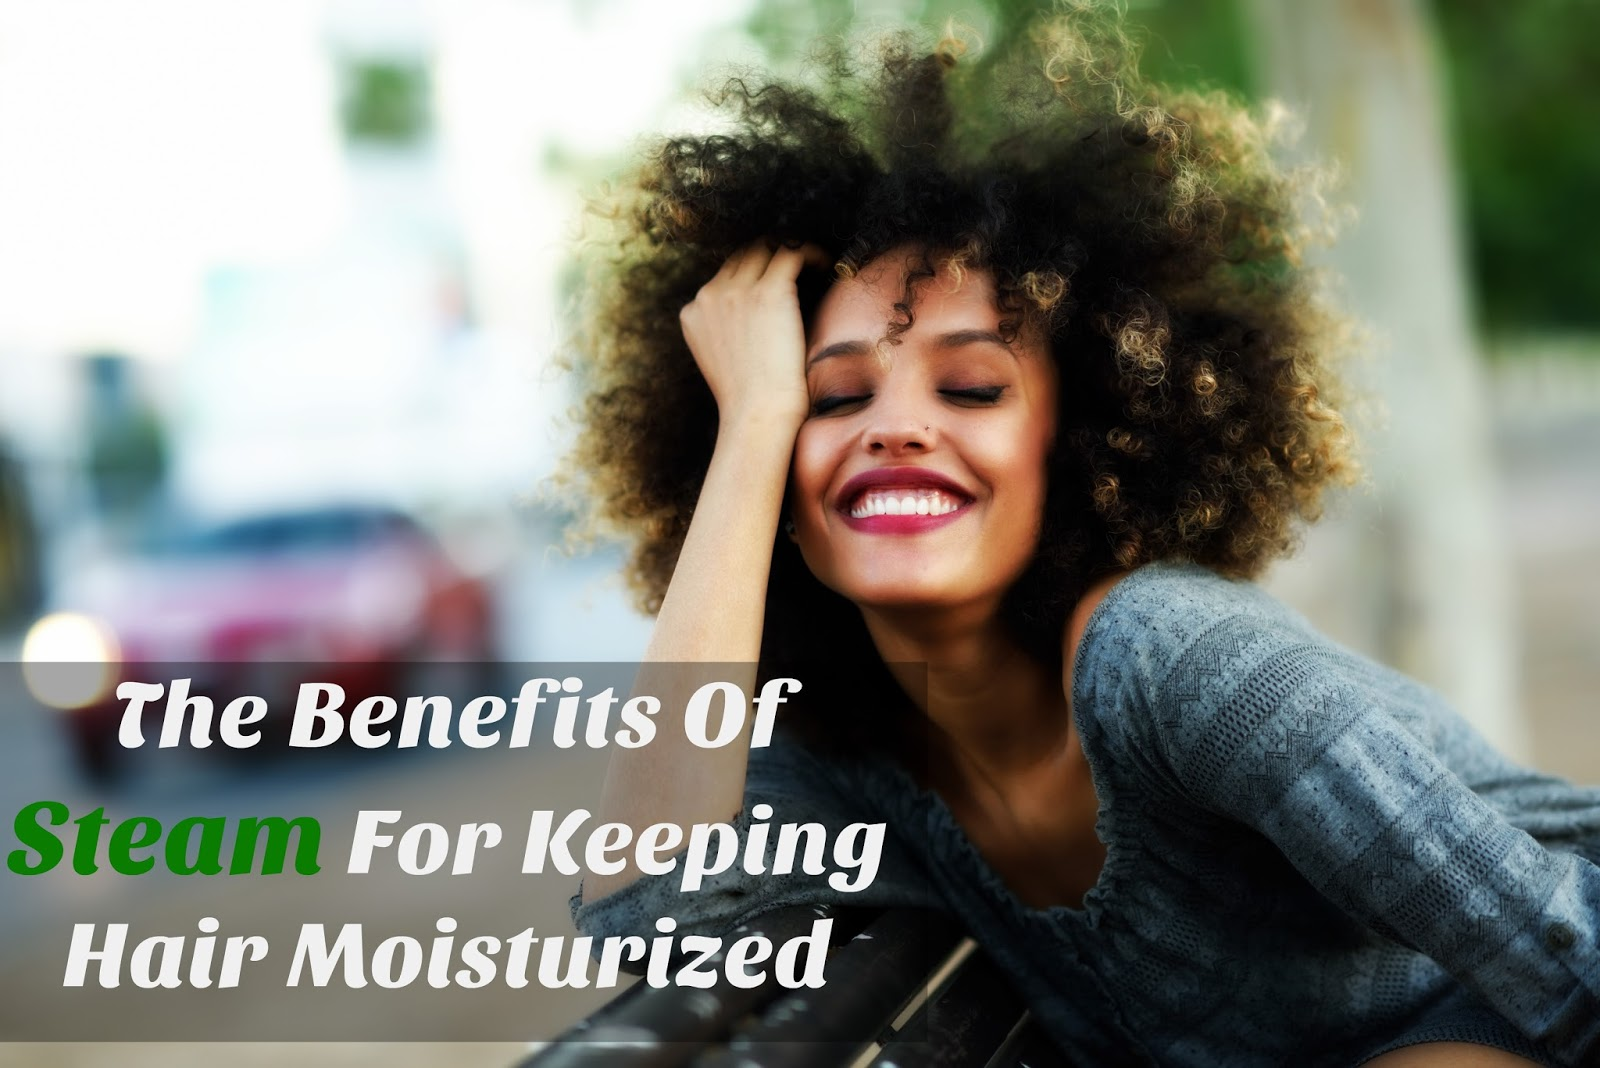 The benefits of steam for keeping hair moisturized